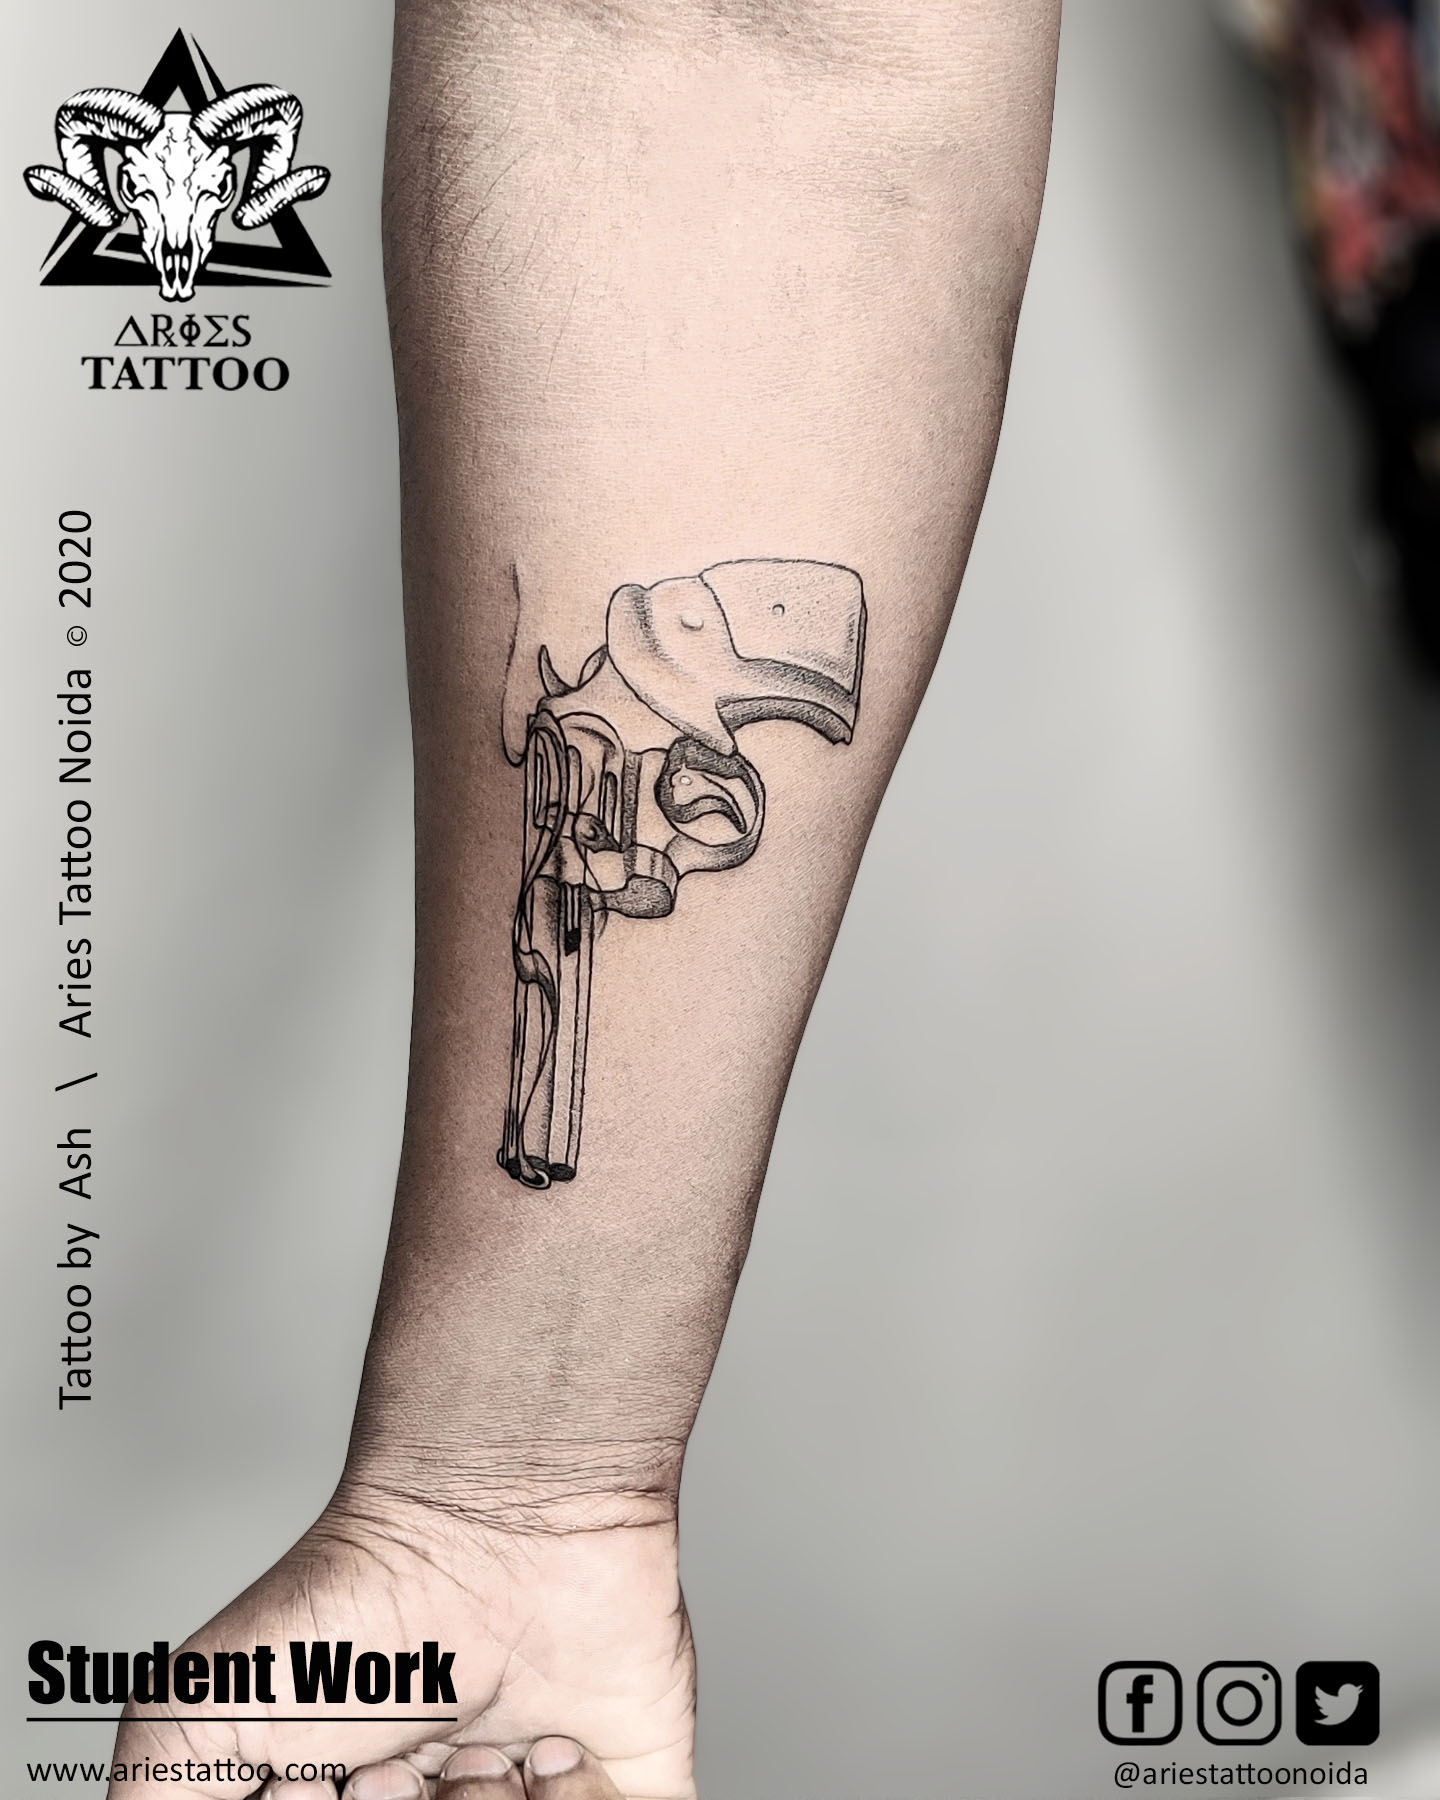 Gun tattoo_Ash_|Aries Tattoo Noida | Tattoo Shop and Studio In Noida